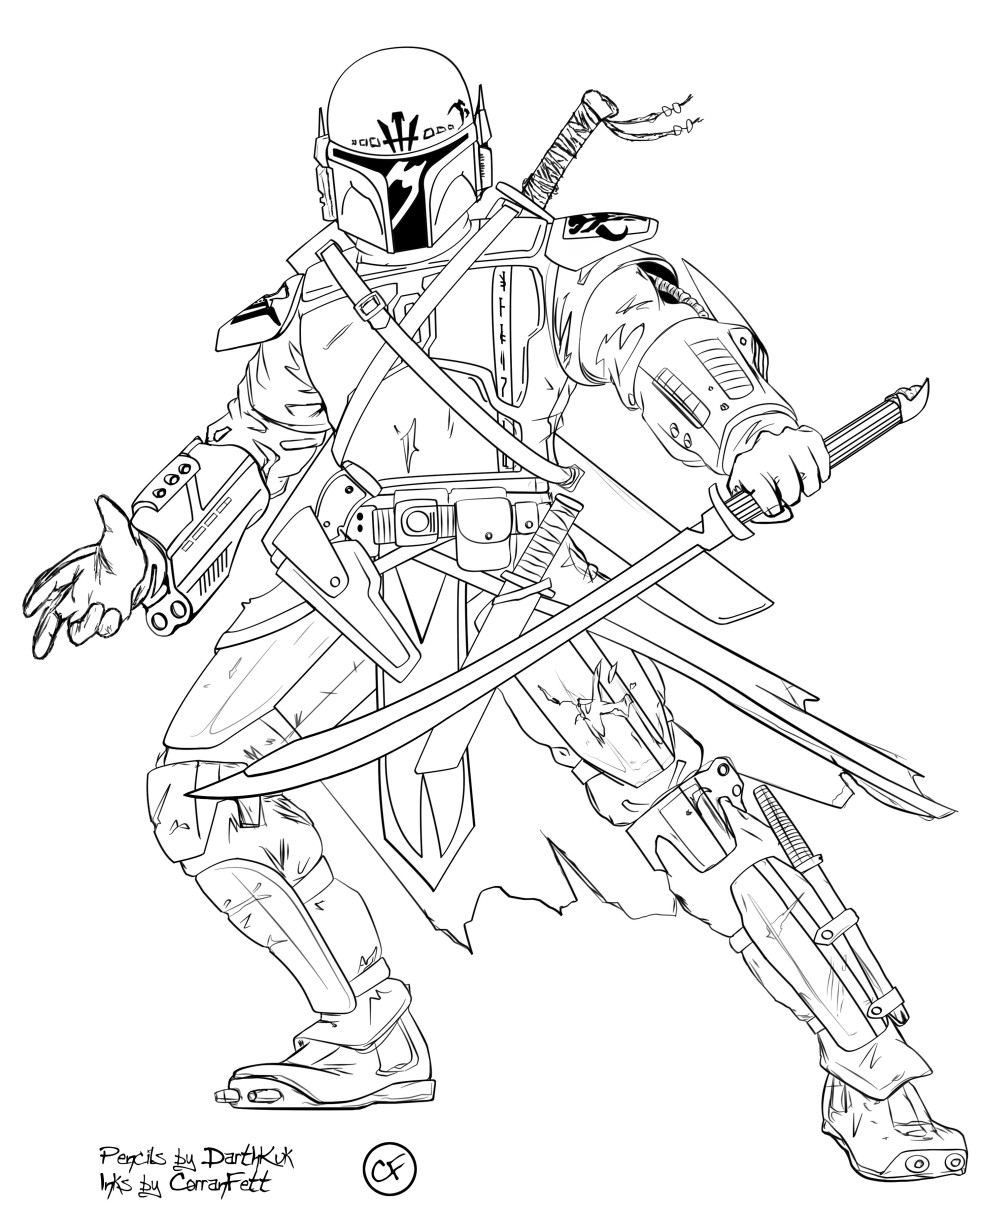 Star Wars Free Printable Coloring Pages  Free Printable Star Wars Coloring Pages For Kids